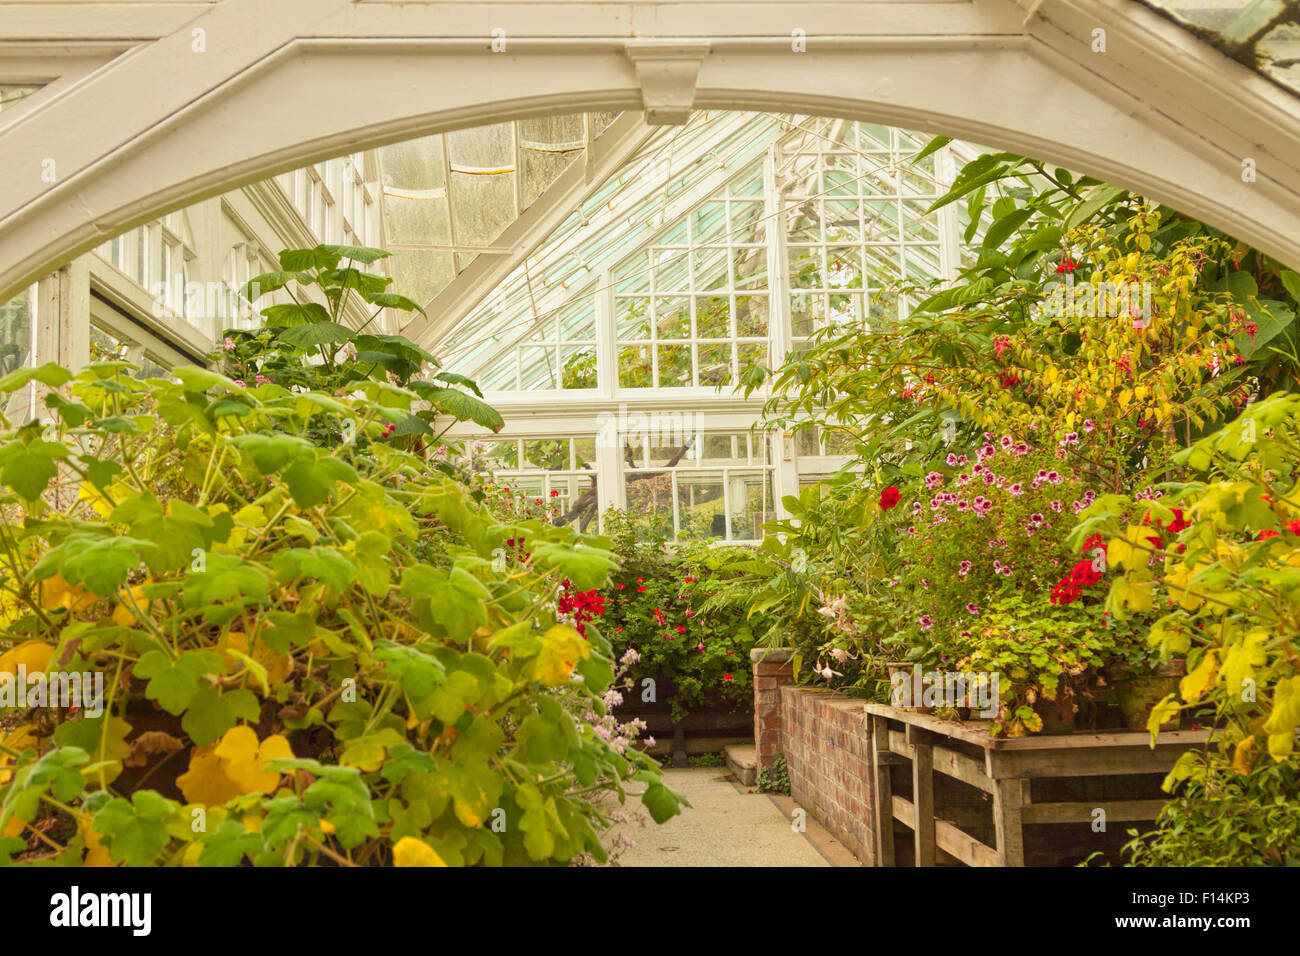 Historic greenhouse at Hergest Croft Gardens, near Kington in Herefordshire, England, Great Britain, United Kingdom. - Stock Image